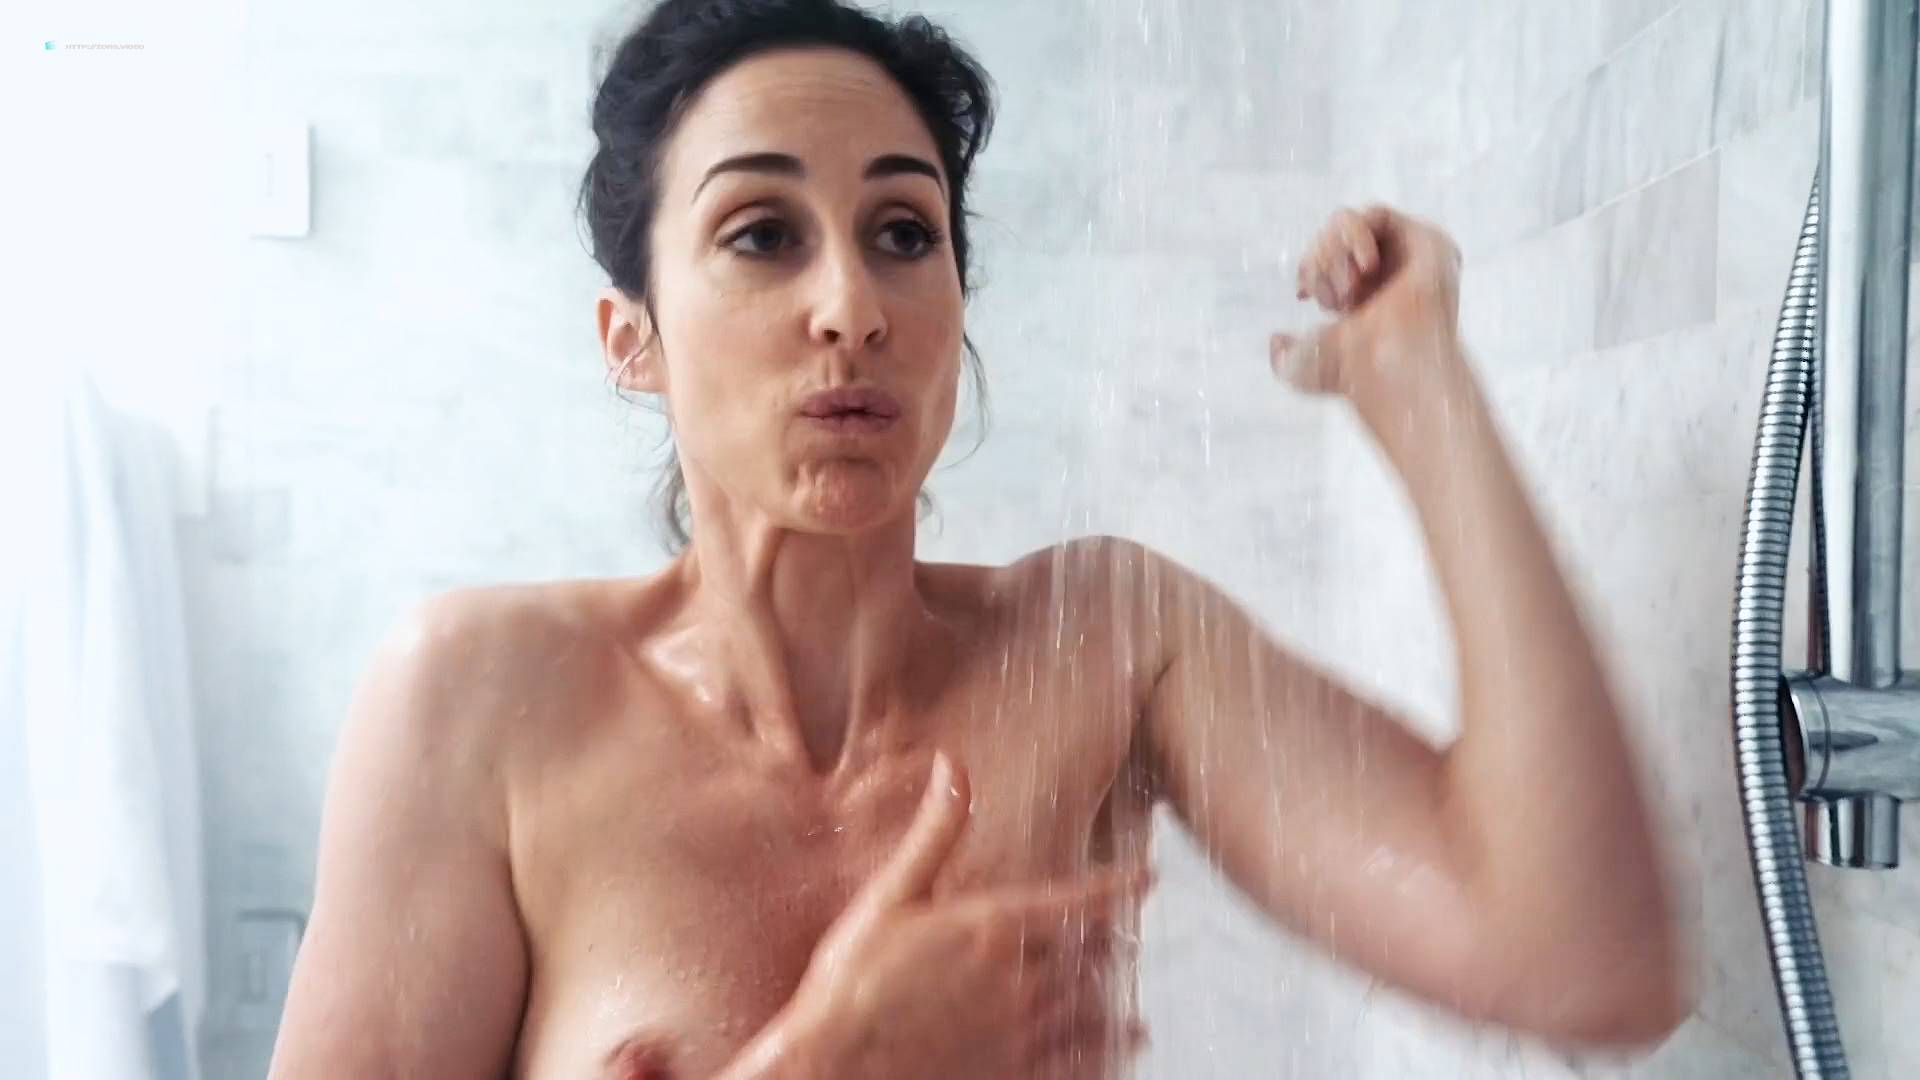 Sorry, that shower savage sex thanks for